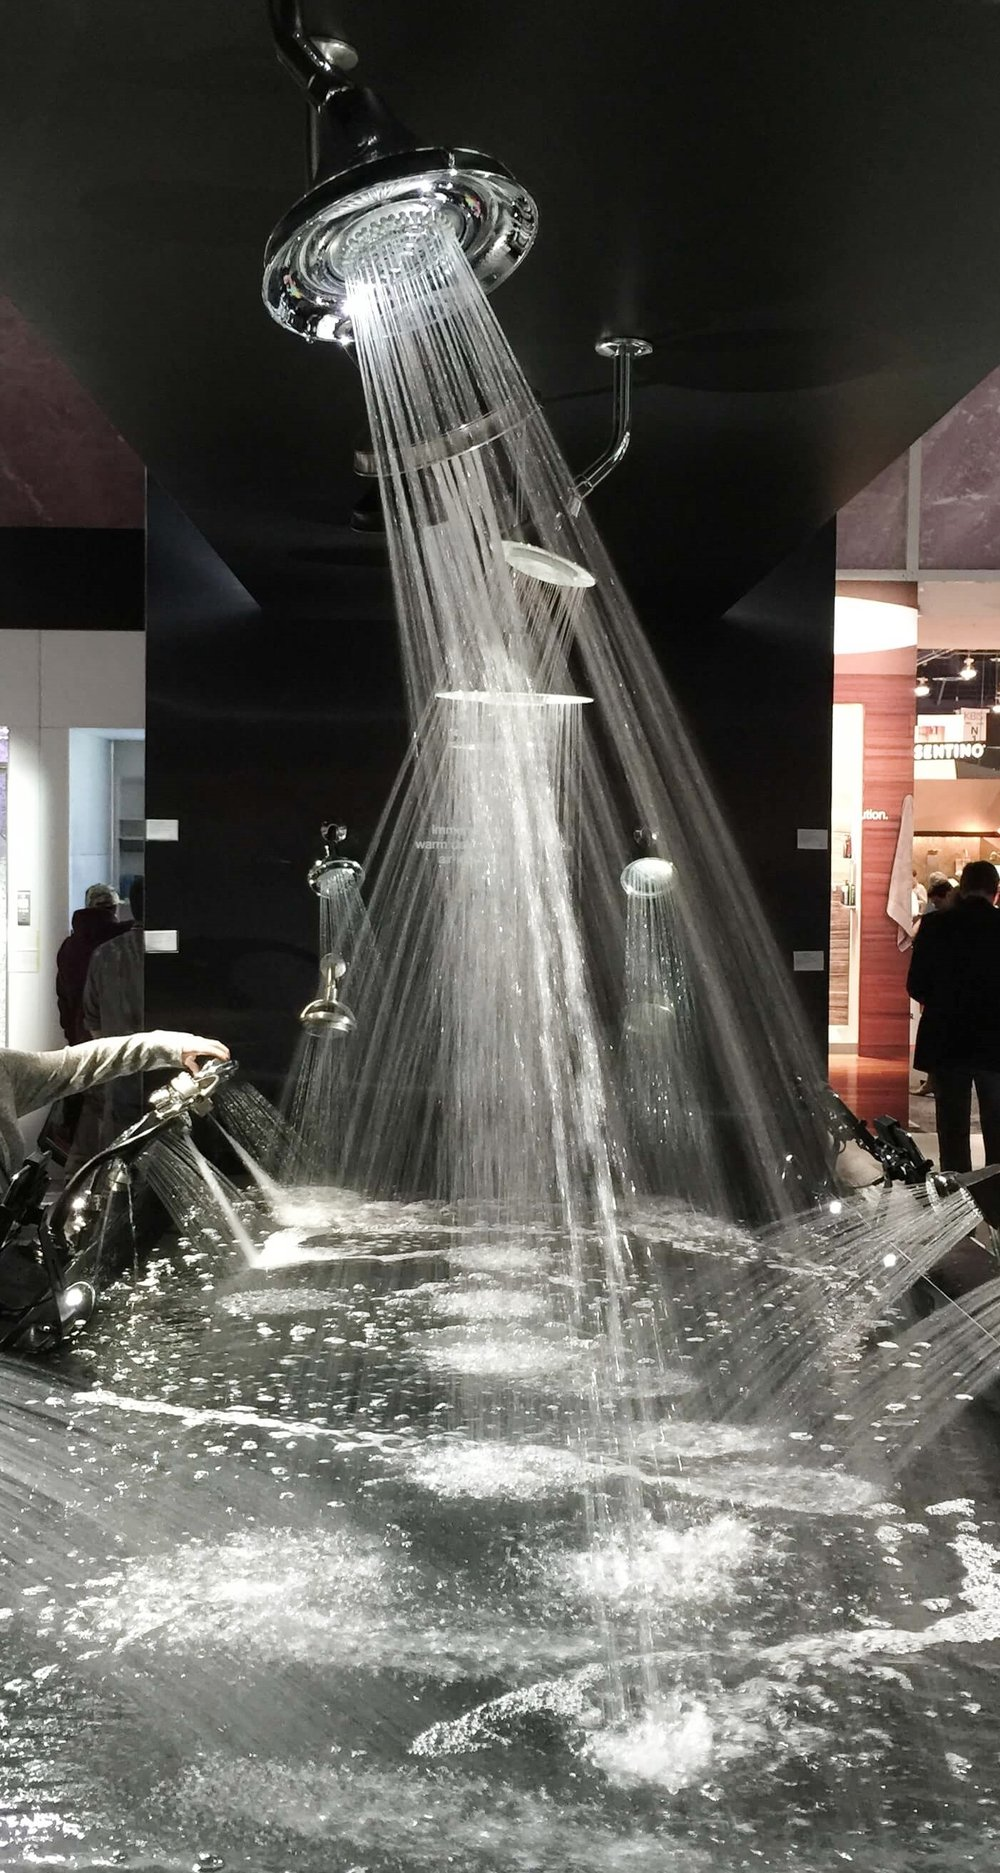 Showerhead display at Kohler booth - KBIS, Kitchen and Bath Industry Show